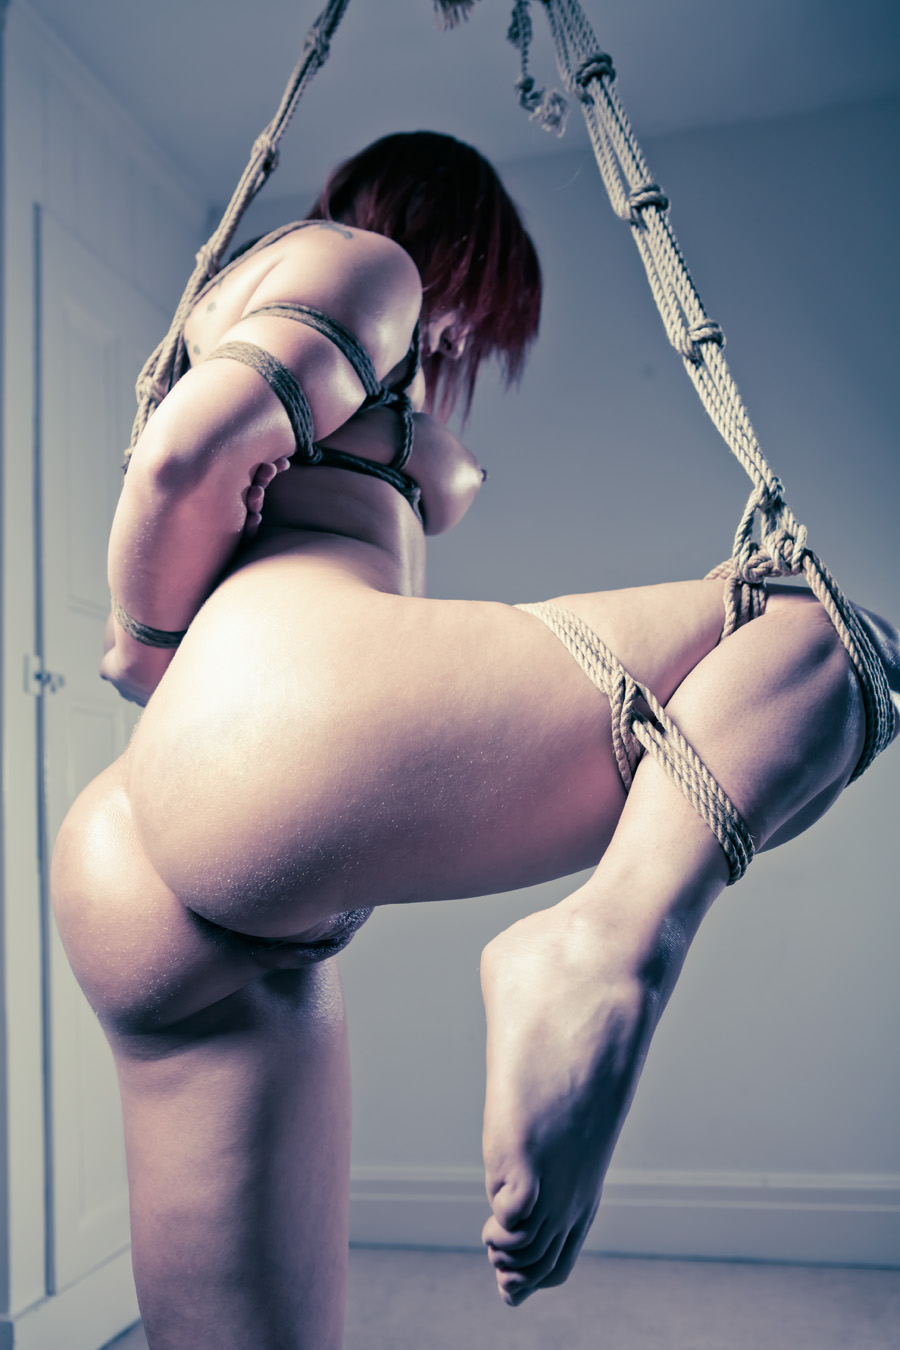 Rope suspension bondage